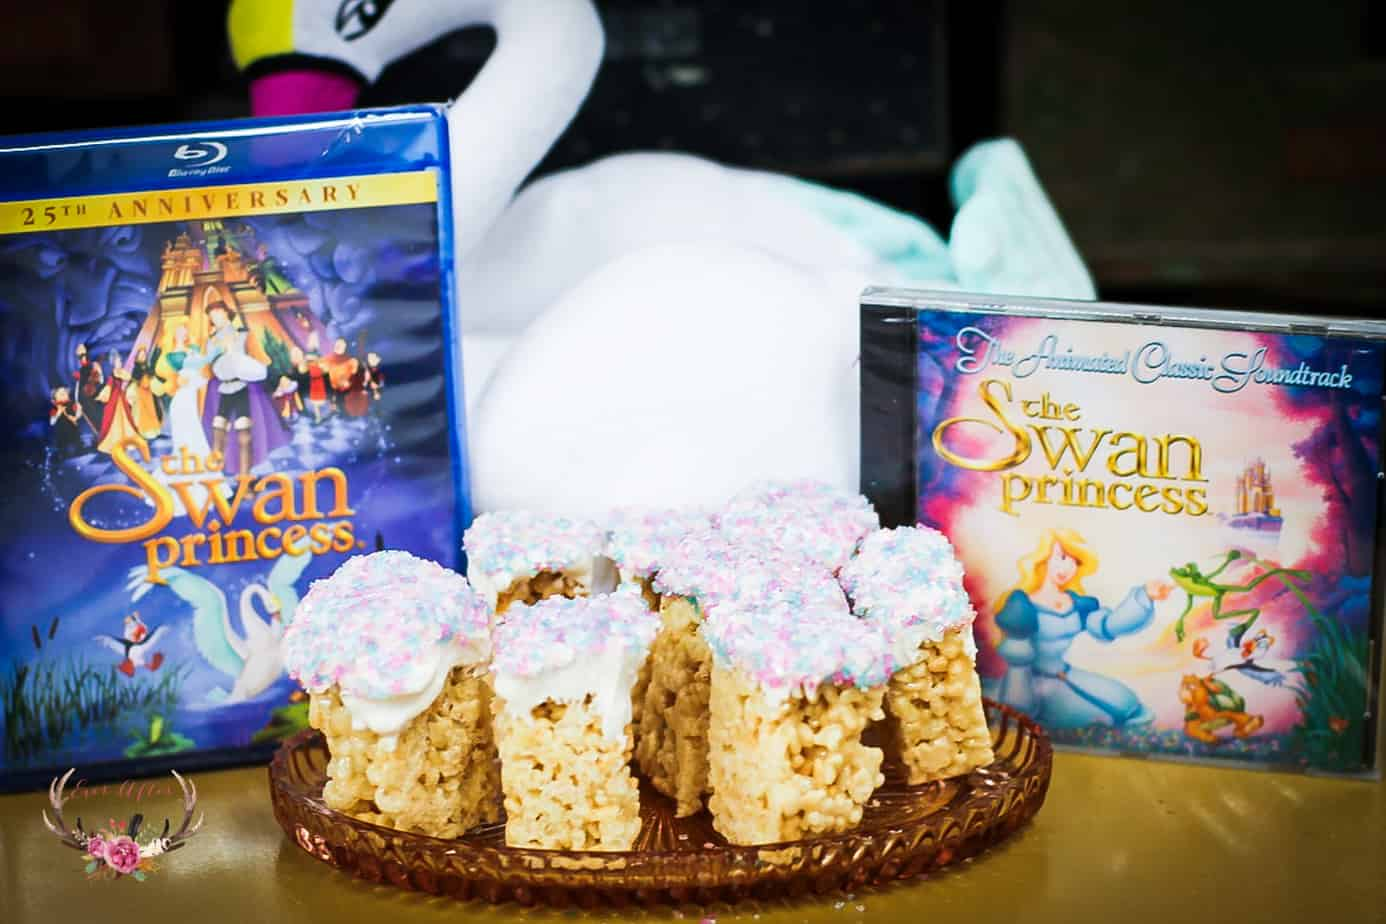 the swan princess 25th anniversary edition available now